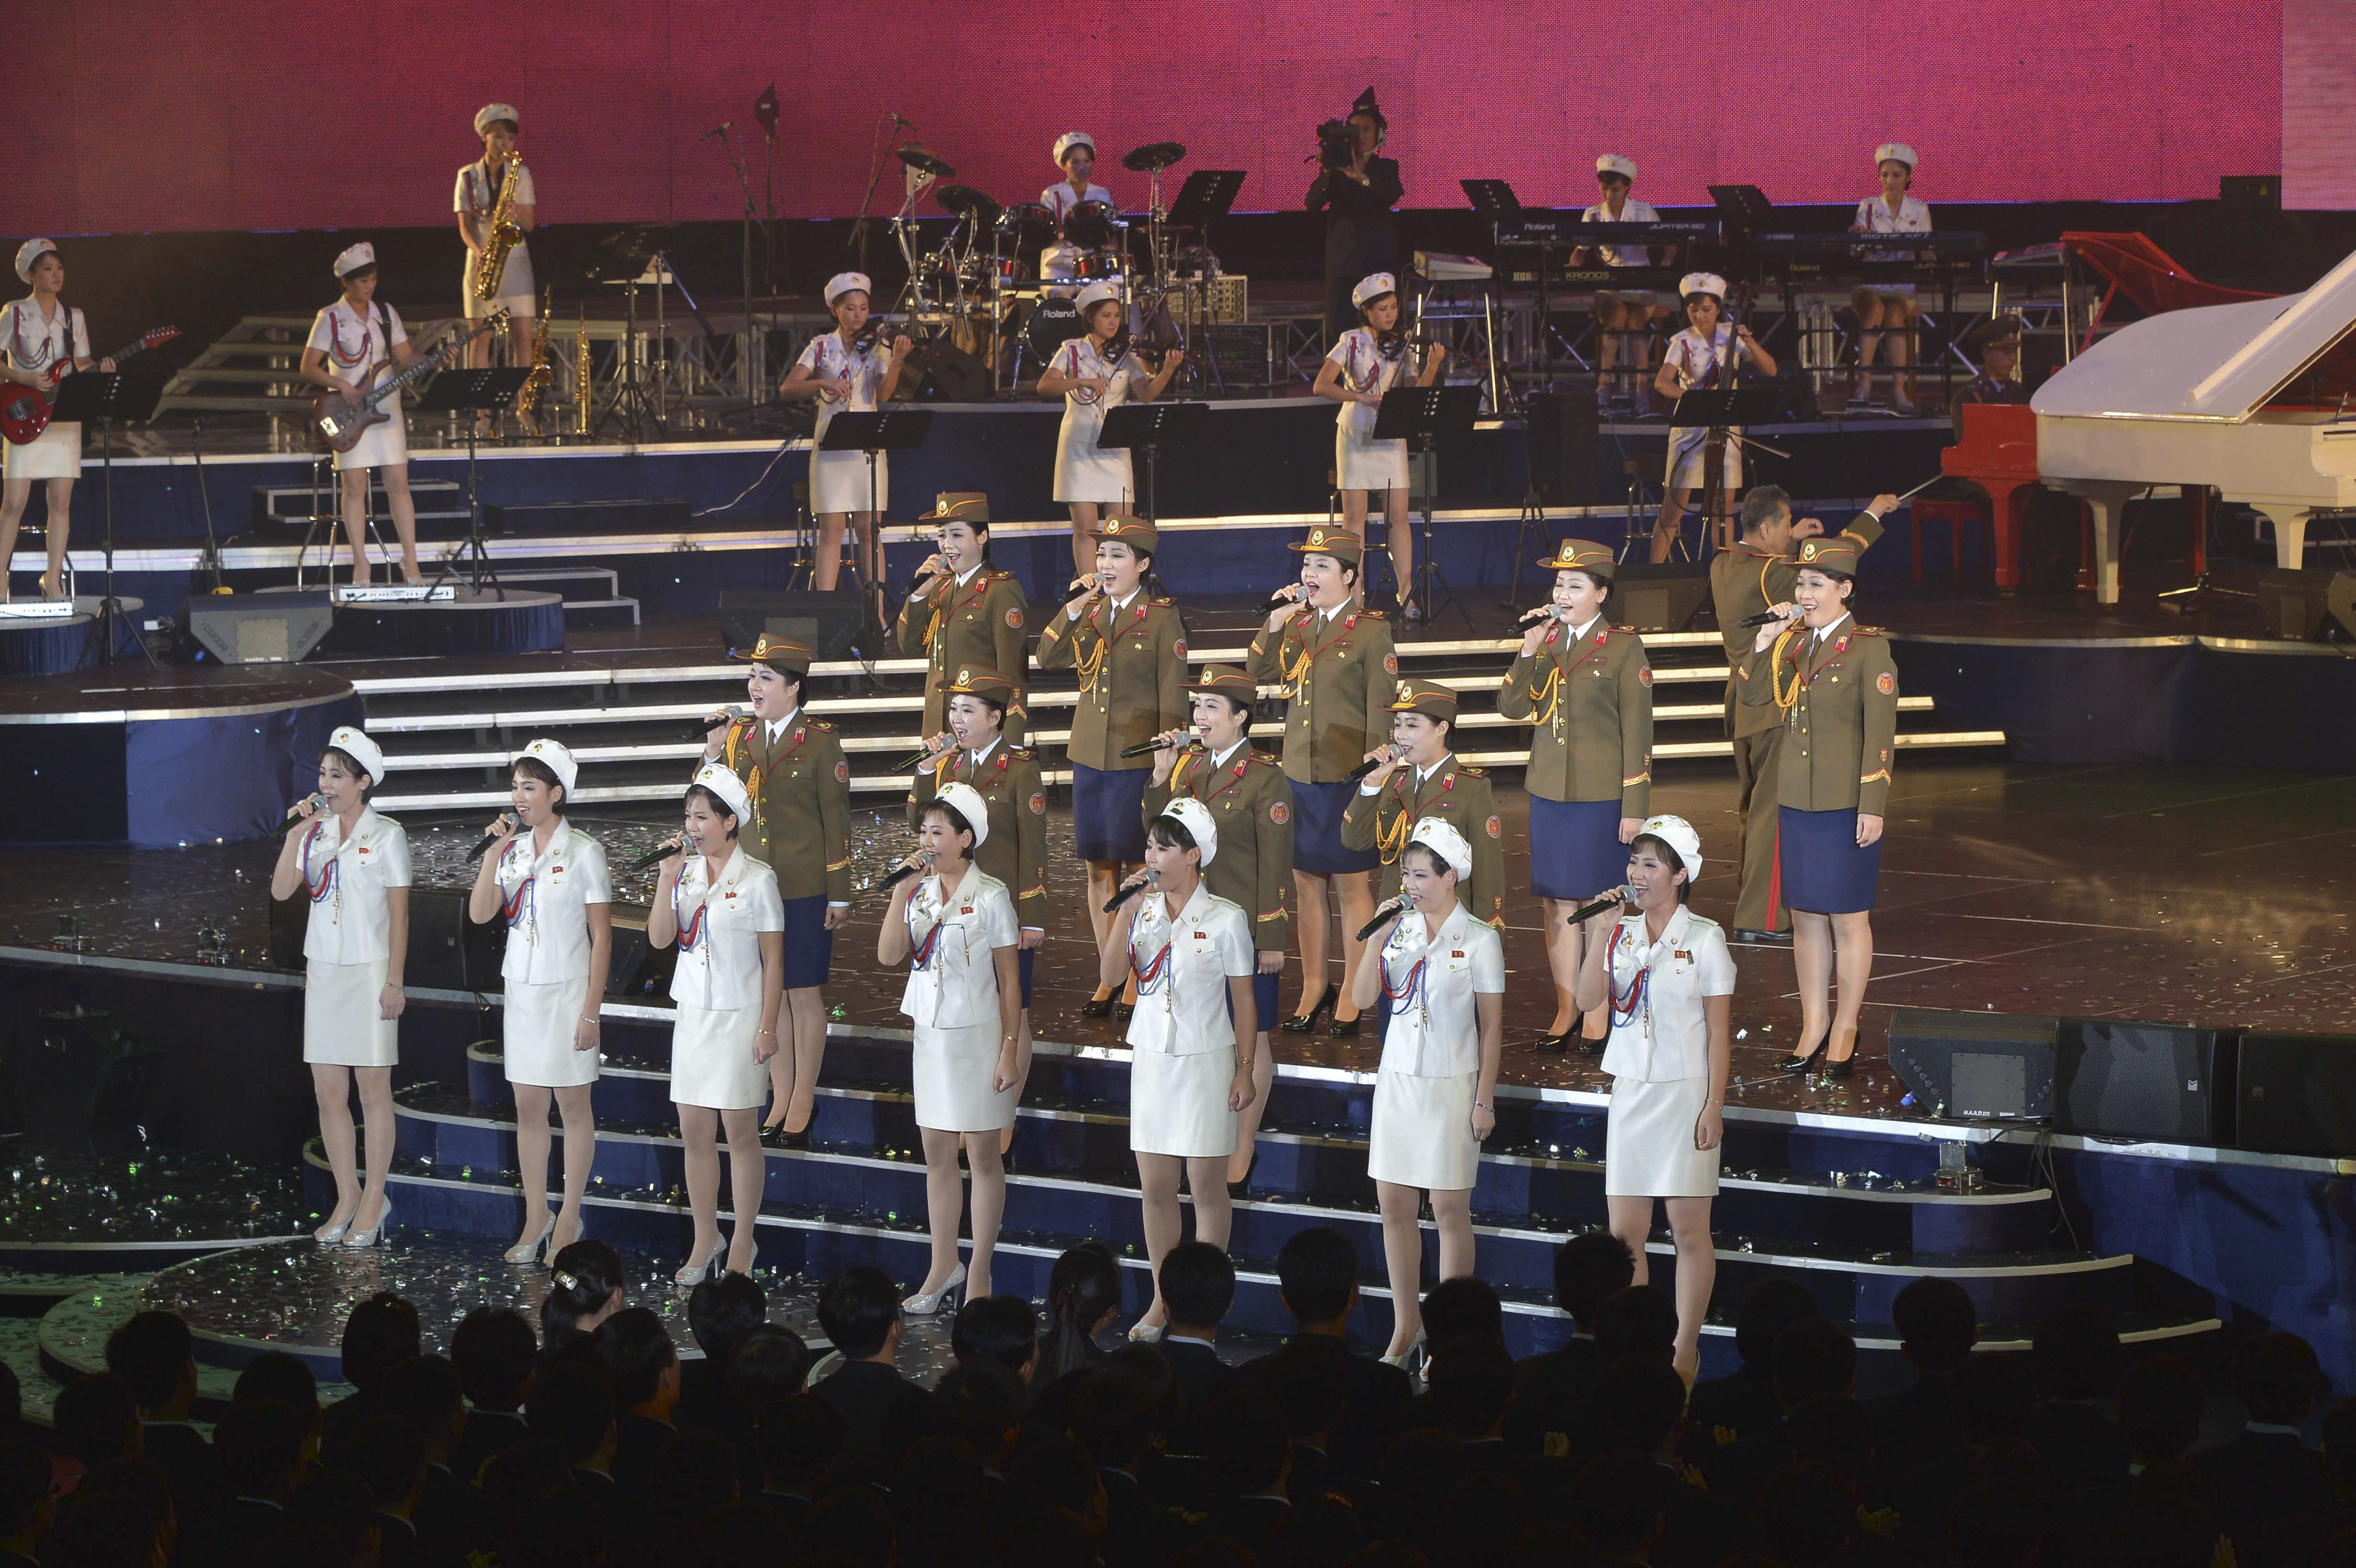 Members of the Moranbong Band and the State Merited Chorus take part in a joint performance to celebrate the 68th anniversary of the Workers' Party of Korea (WPK) in this undated photo released by North Korea's Korean Central News Agency (KCNA) in Pyongyang, Oct. 11, 2013.